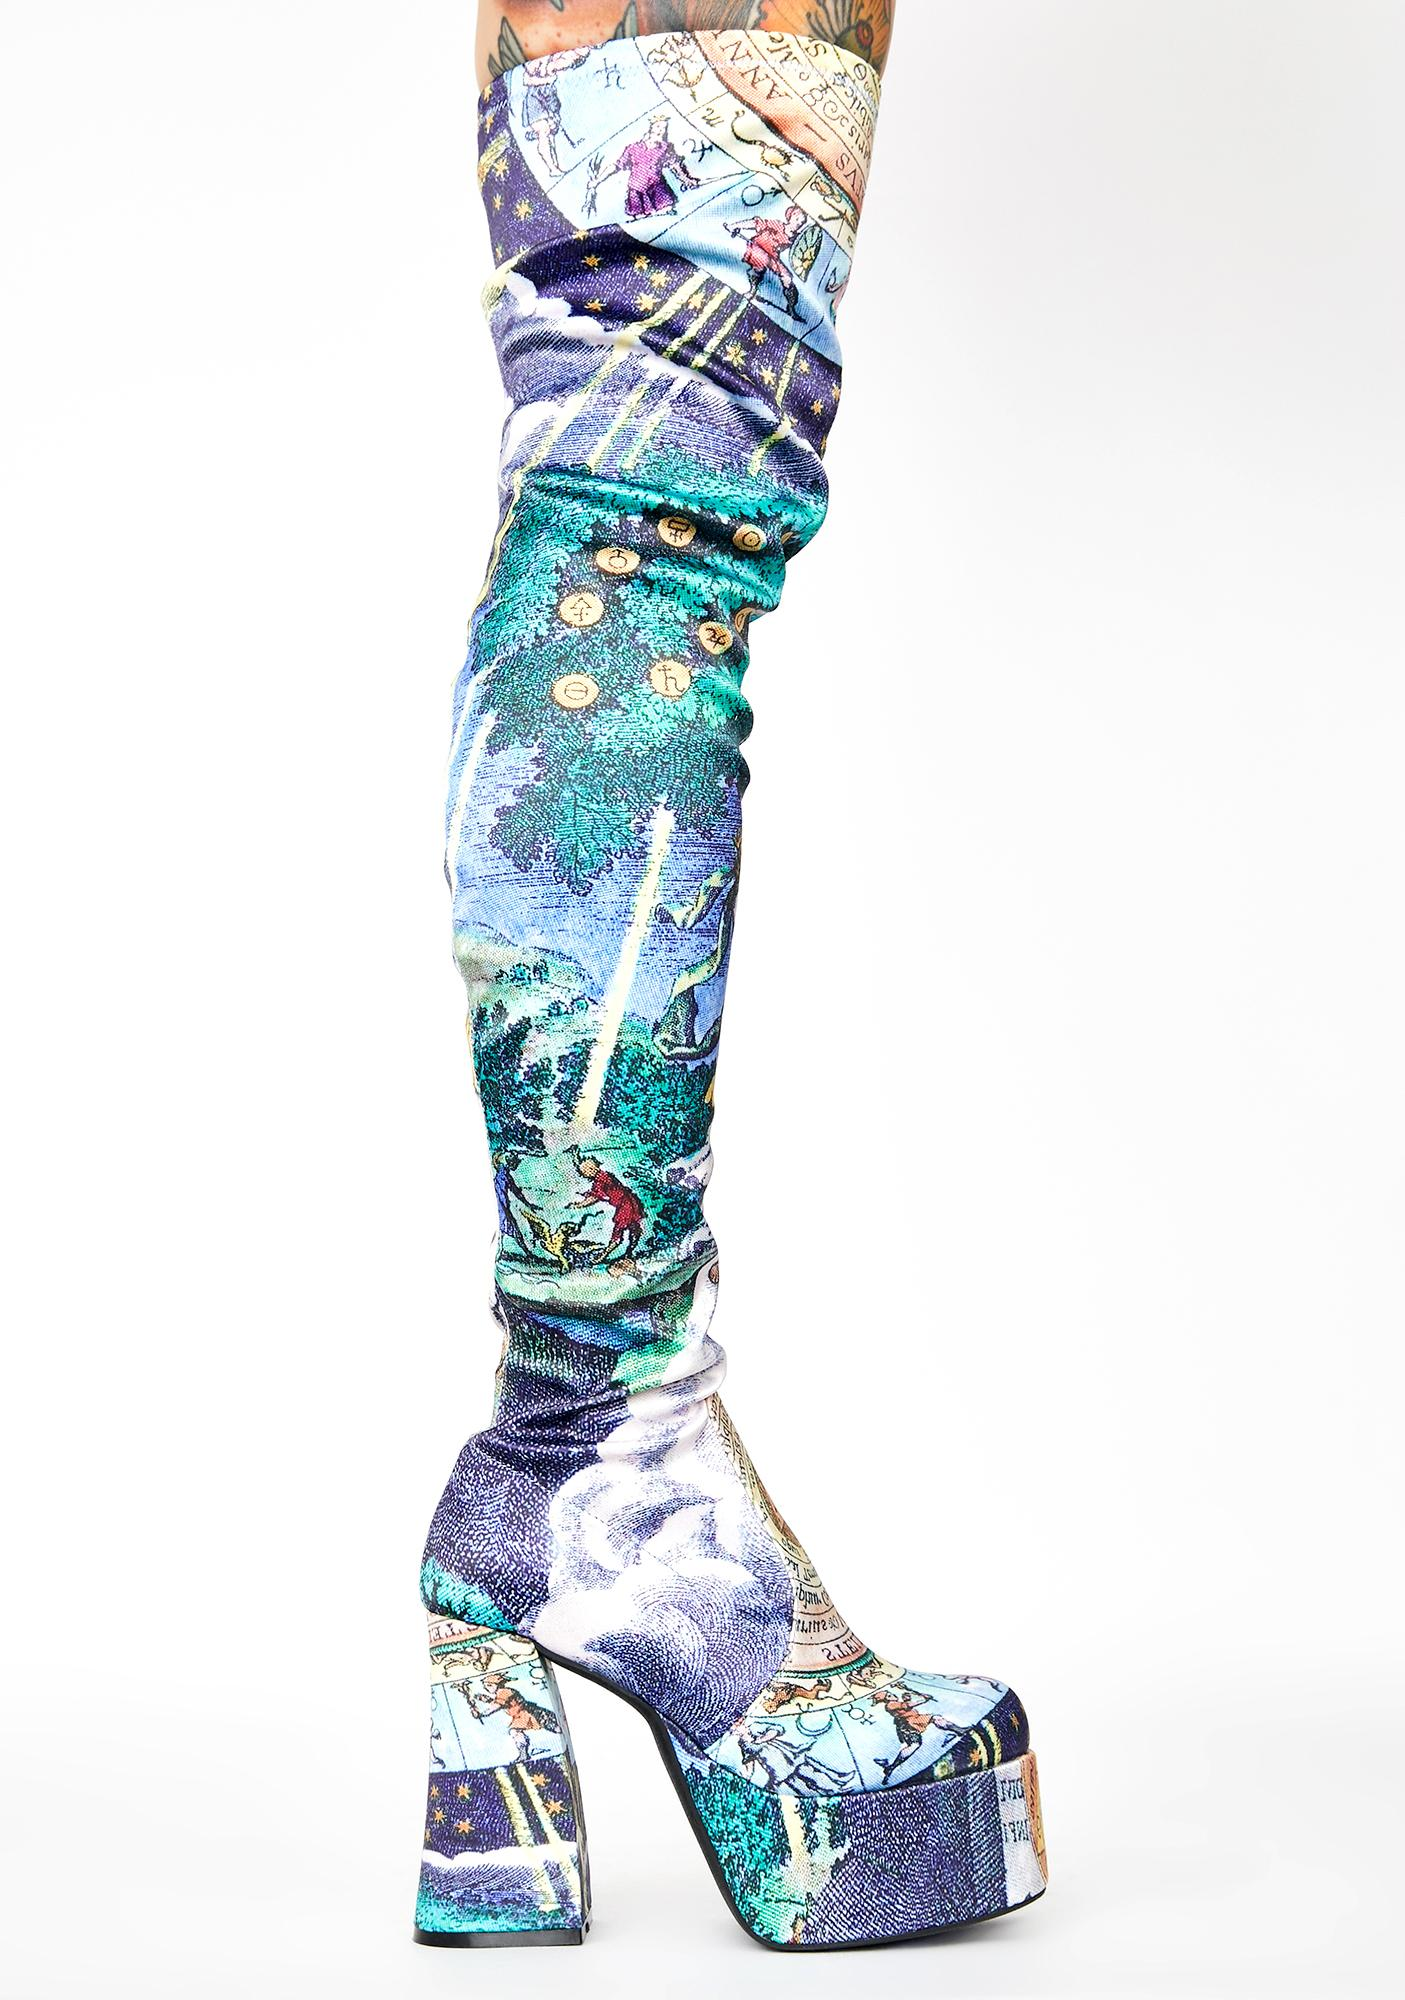 HOROSCOPEZ Illusions N' Delusions Thigh High Boots